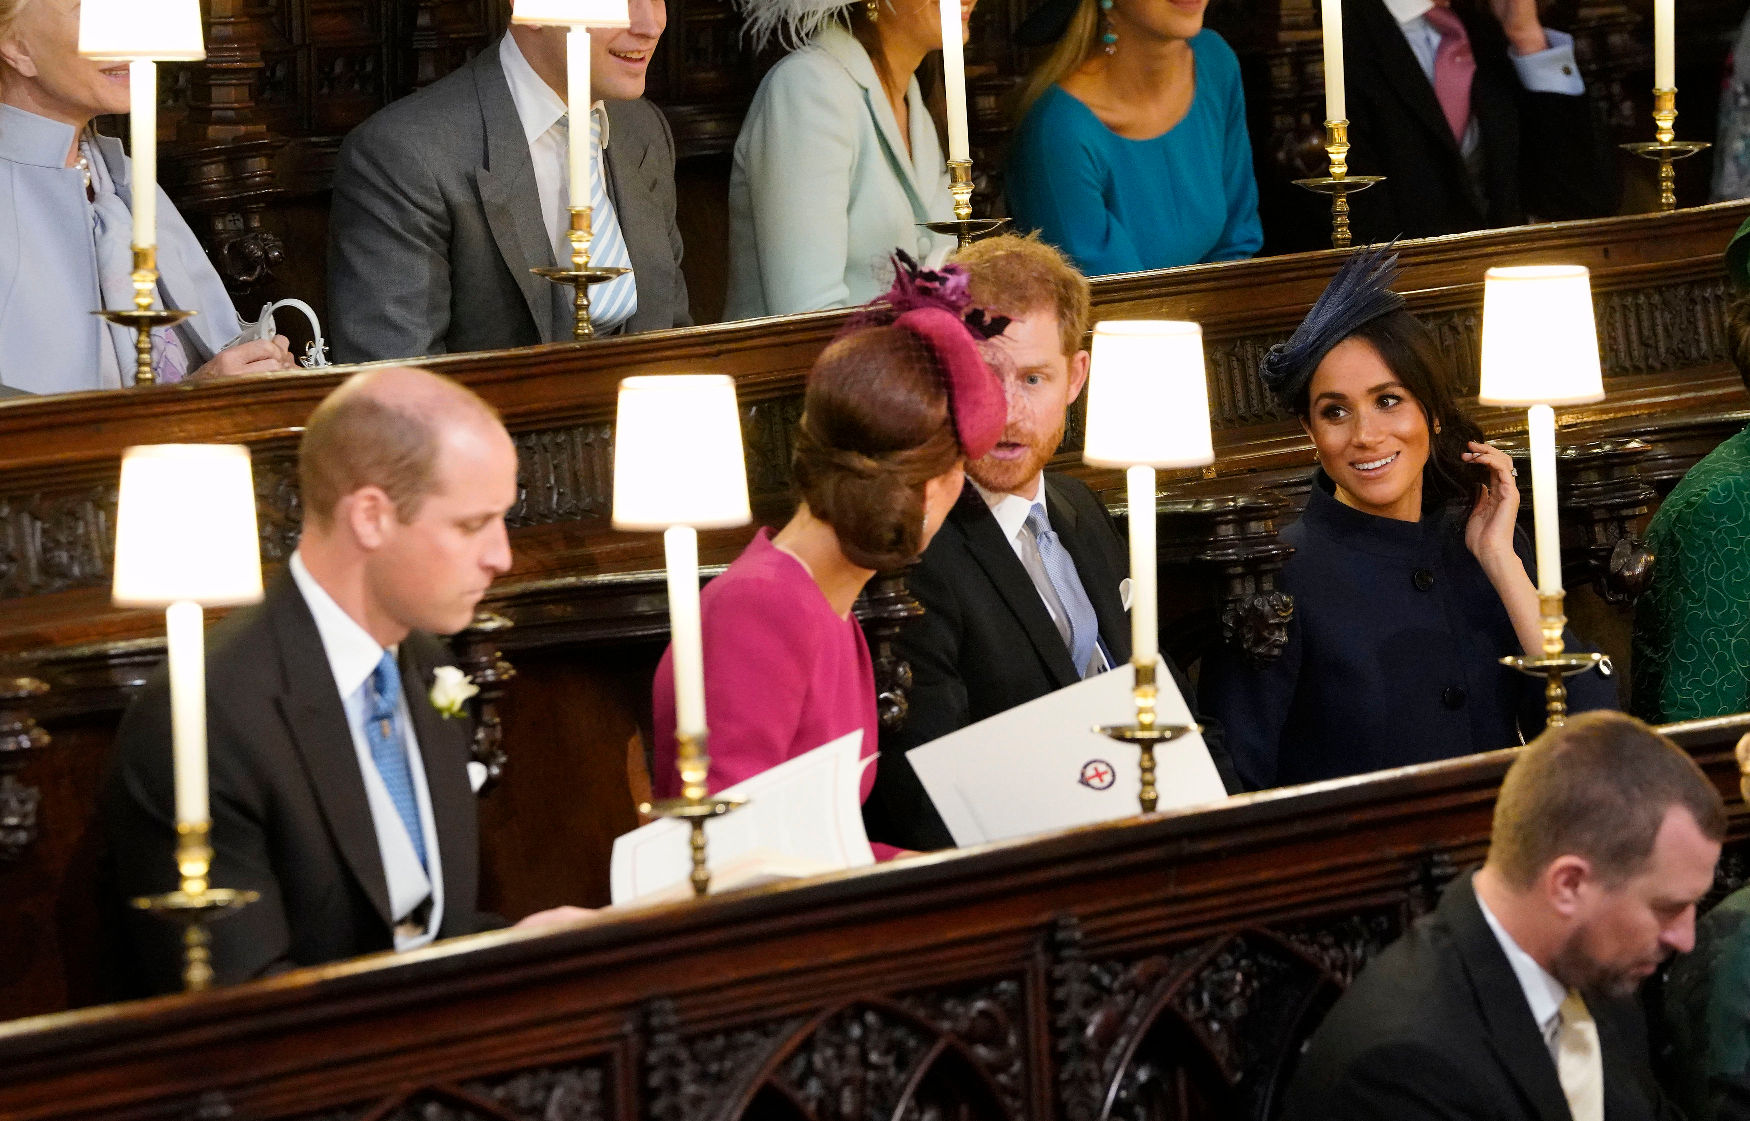 WINDSOR, ENGLAND - OCTOBER 12: Catherine, Duchess of Cambridge, Prince William, Duke of Cambridge, Prince Harry, Duke of Sussex and Meghan, Duchess of Sussex arrive attend the wedding of Princess Eugenie of York to Jack Brooksbank at at St. George's Chapel on October 12, 2018 in Windsor, England. (Photo by  Danny Lawson - WPA Pool/Getty Images)